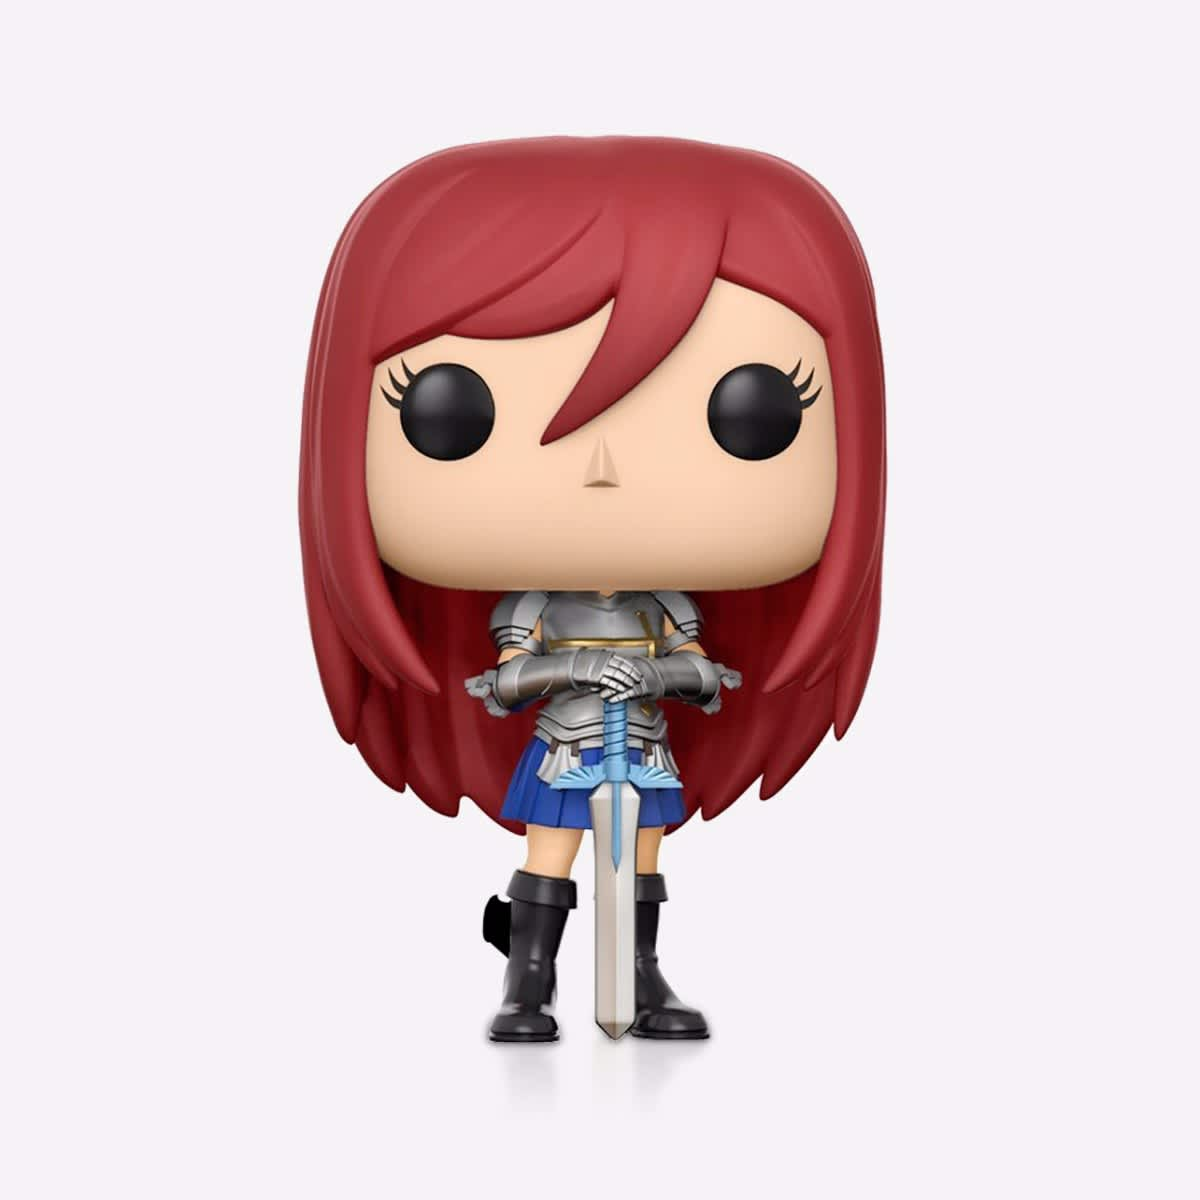 Funko Pop - Erza Scarlet Figures & Collectibles